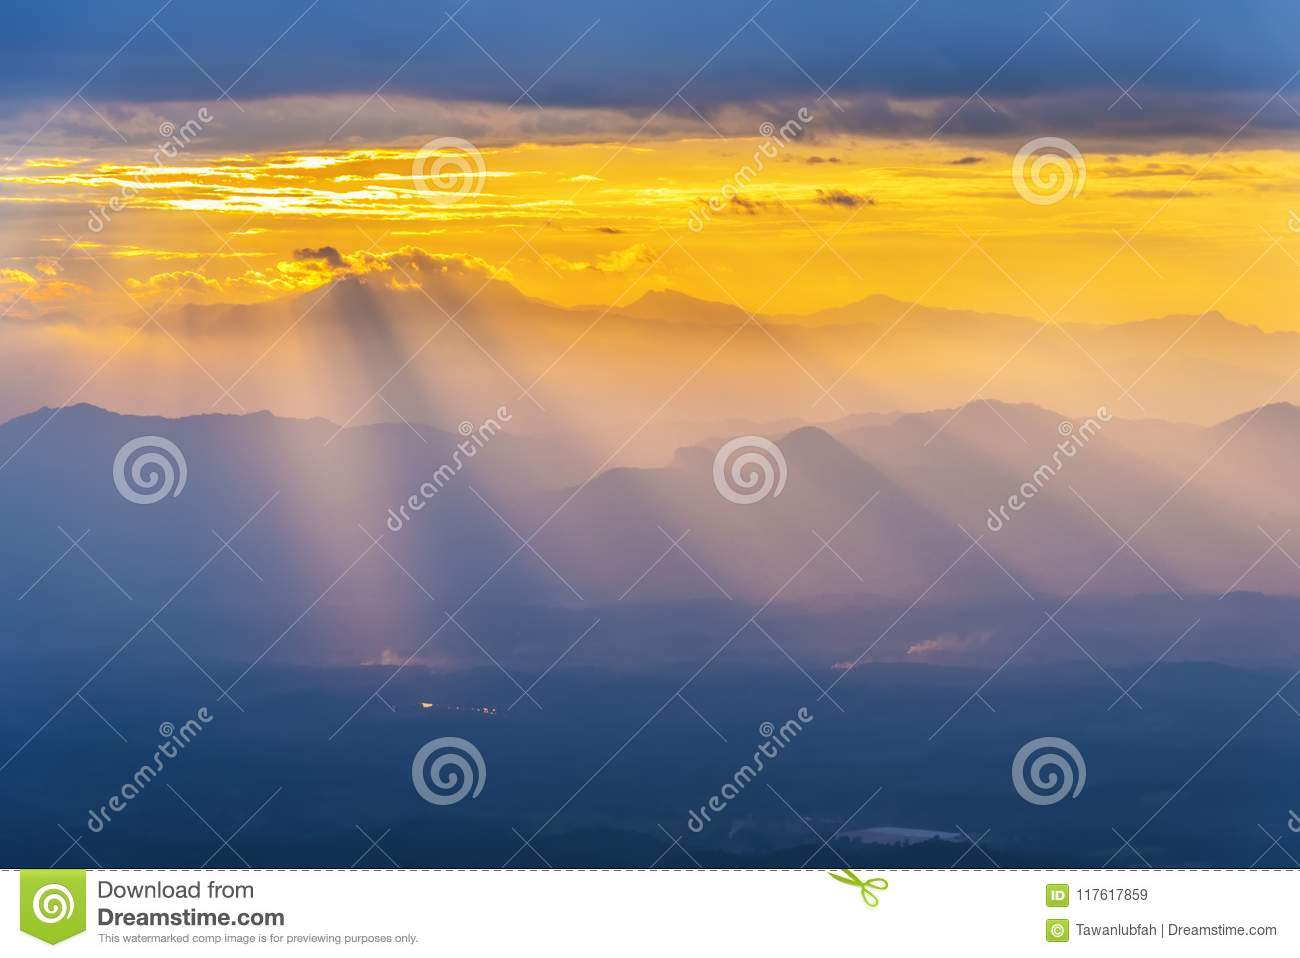 Nature Background Ray Light Mountain Sunset Fantasy Sky Nature Background  Ray Light Mountain Sunset Fantasy Sky Scene 117617859